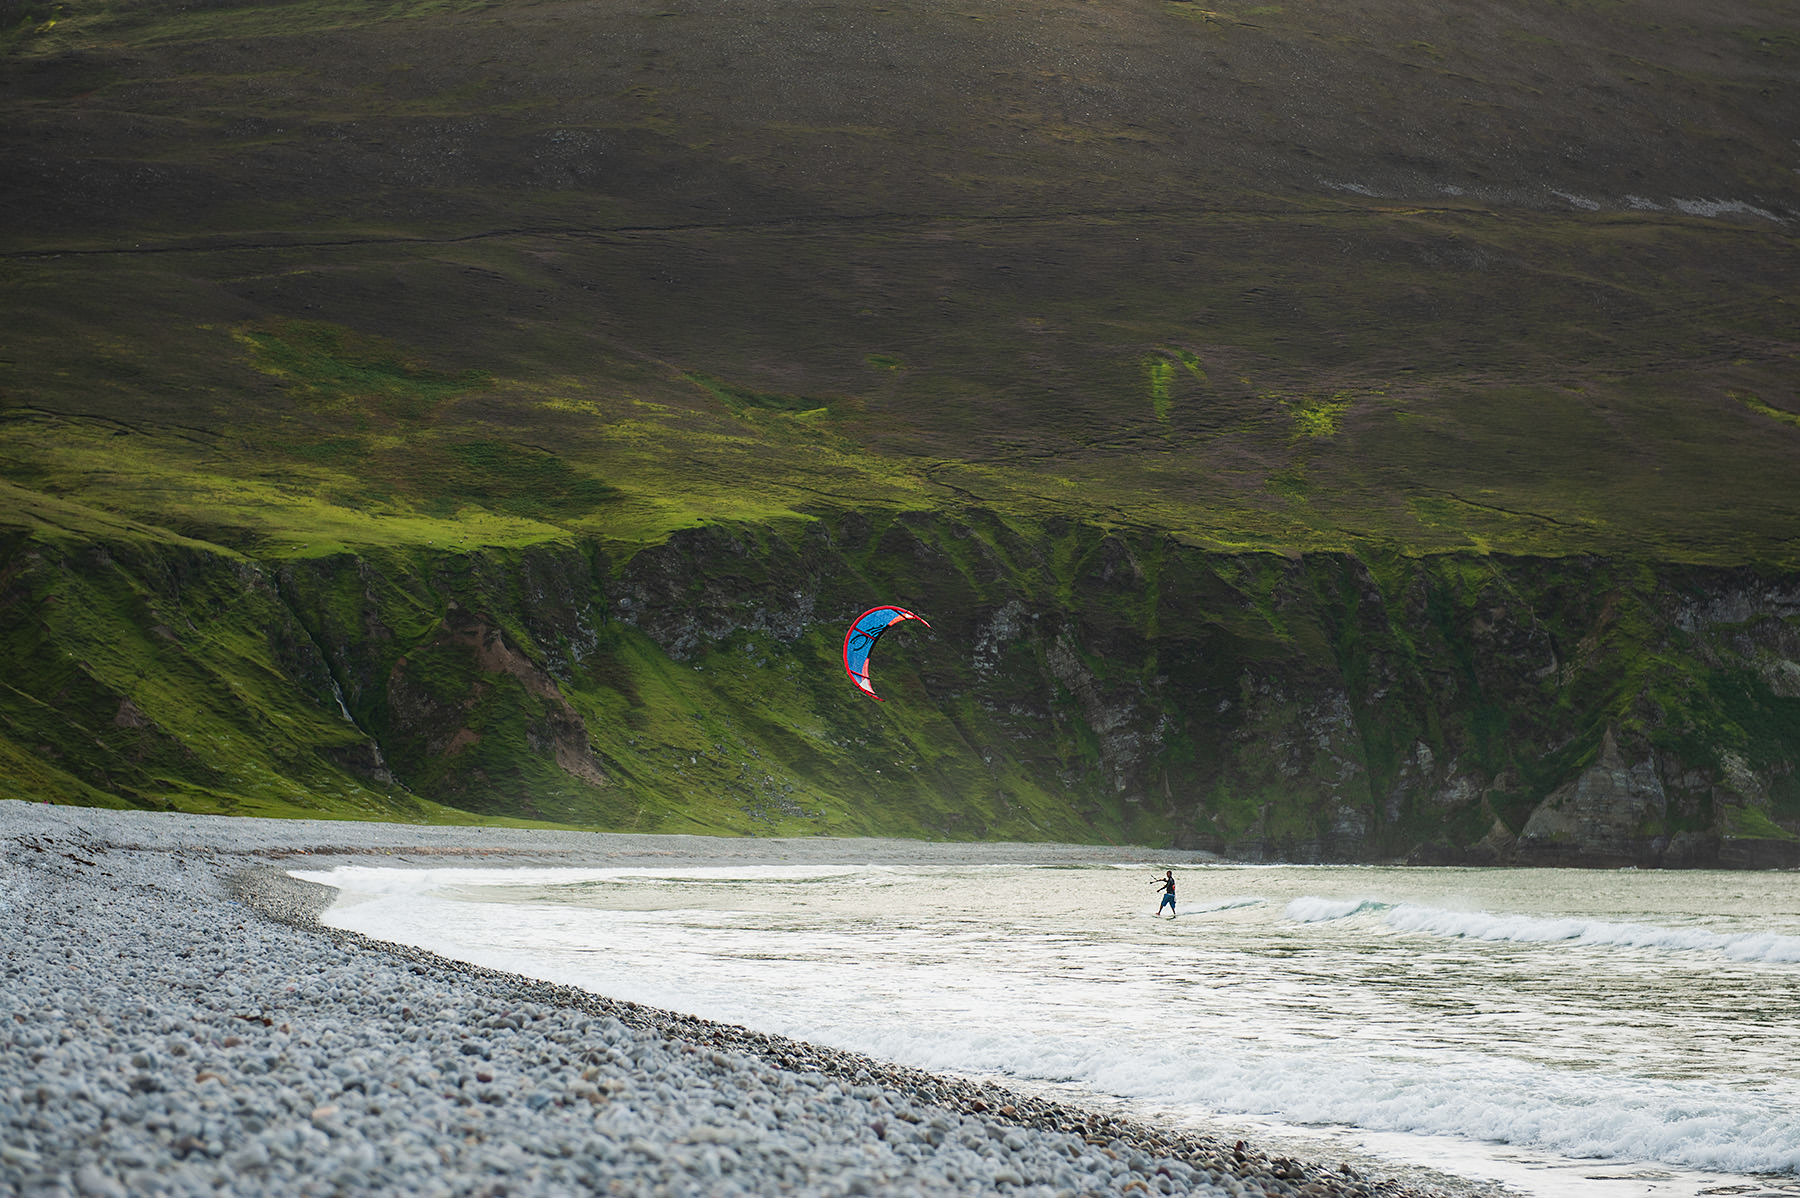 03-outdoor-kite-surfing-ireland-achill-island-pure-magic.jpg